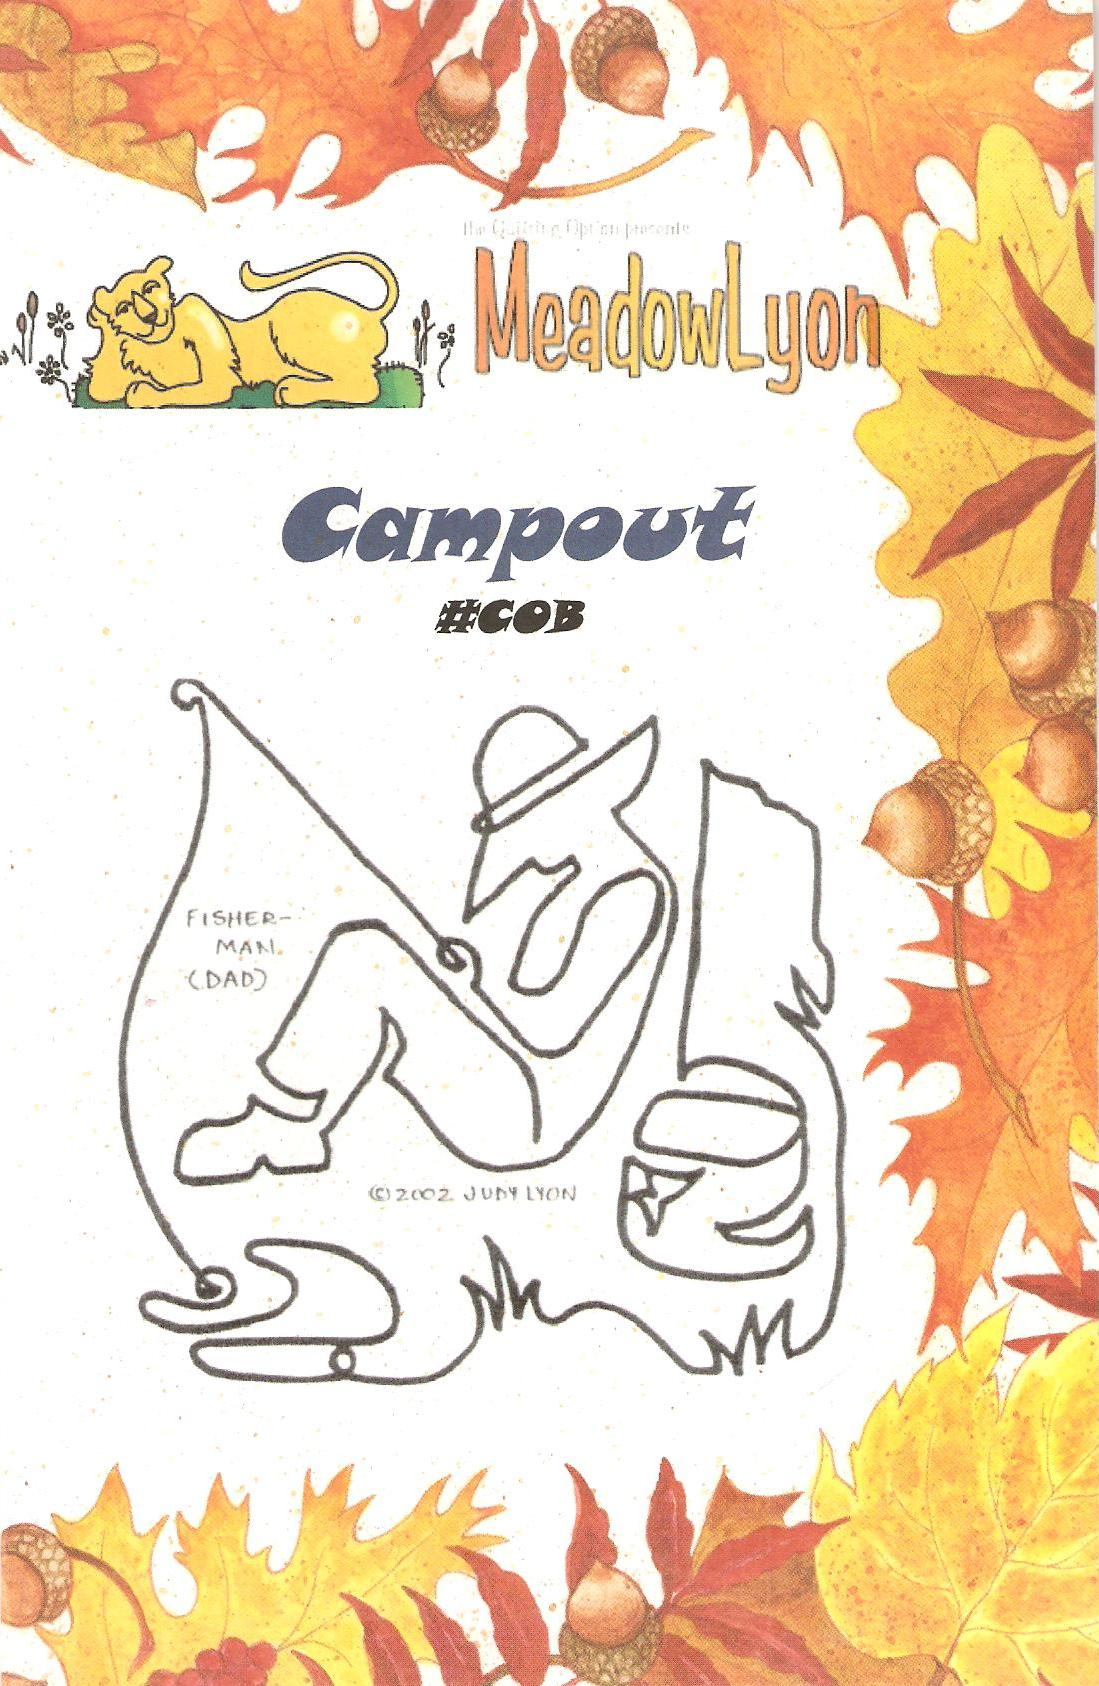 Campout Block - COB - Cover